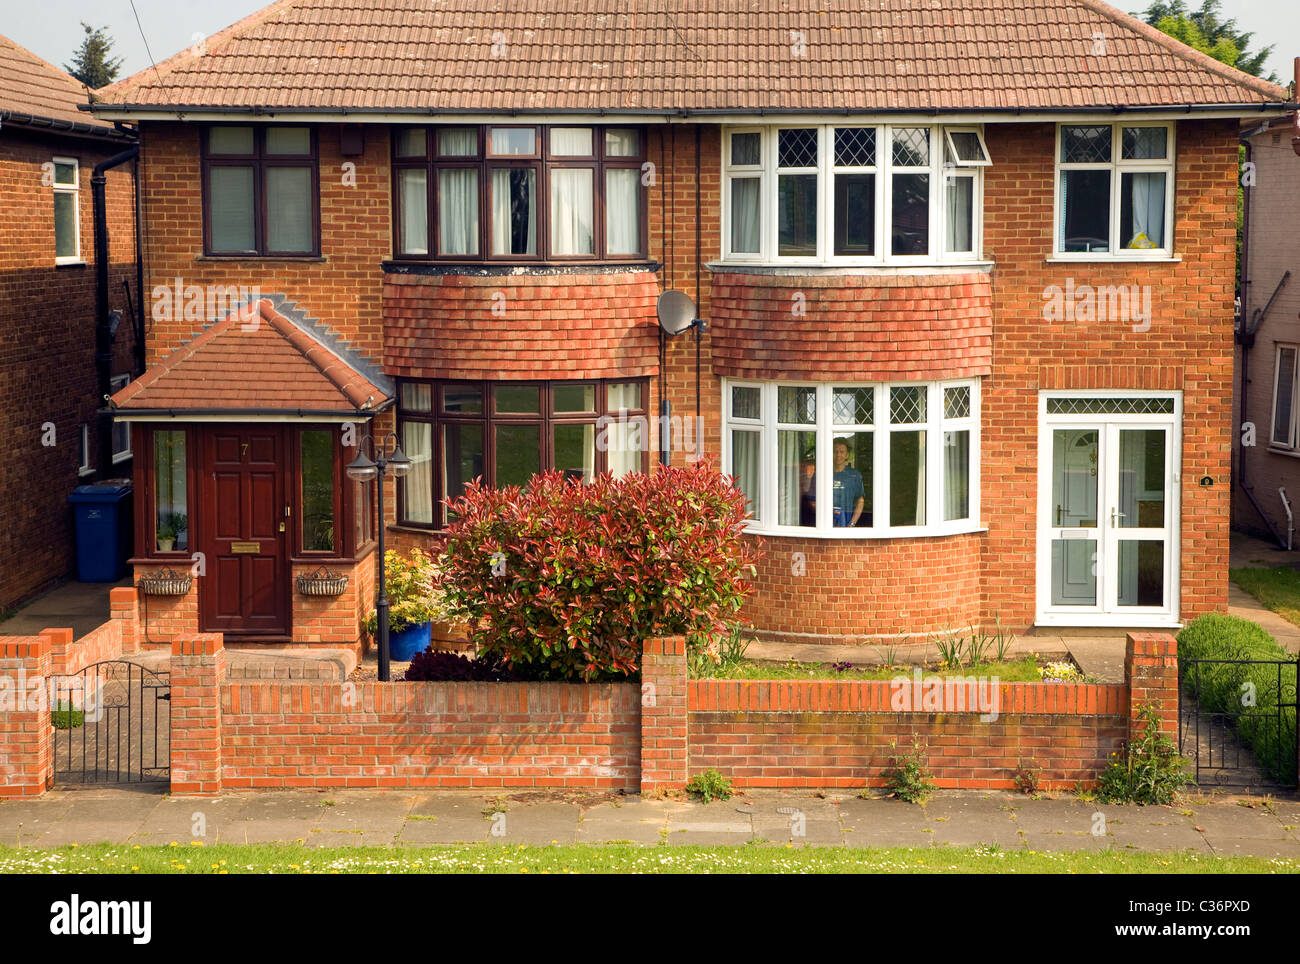 Semi-detached house bay windows 1930s Ipswich Suffolk England man person inside house smiling - Stock Image